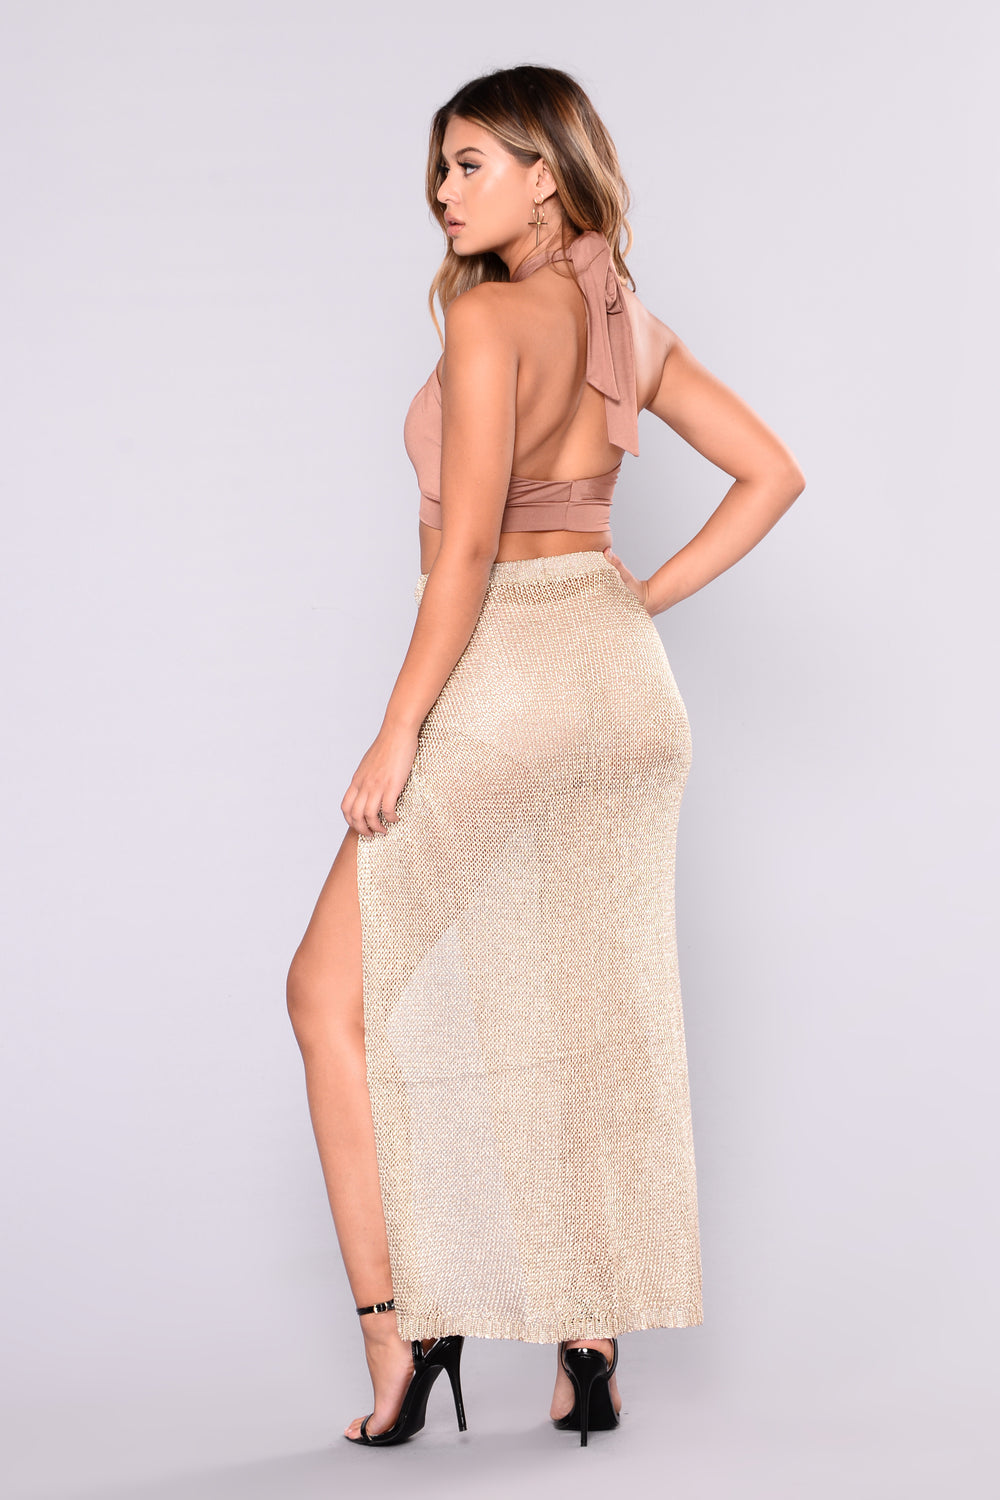 Trophy Wife Crochet Skirt - Gold